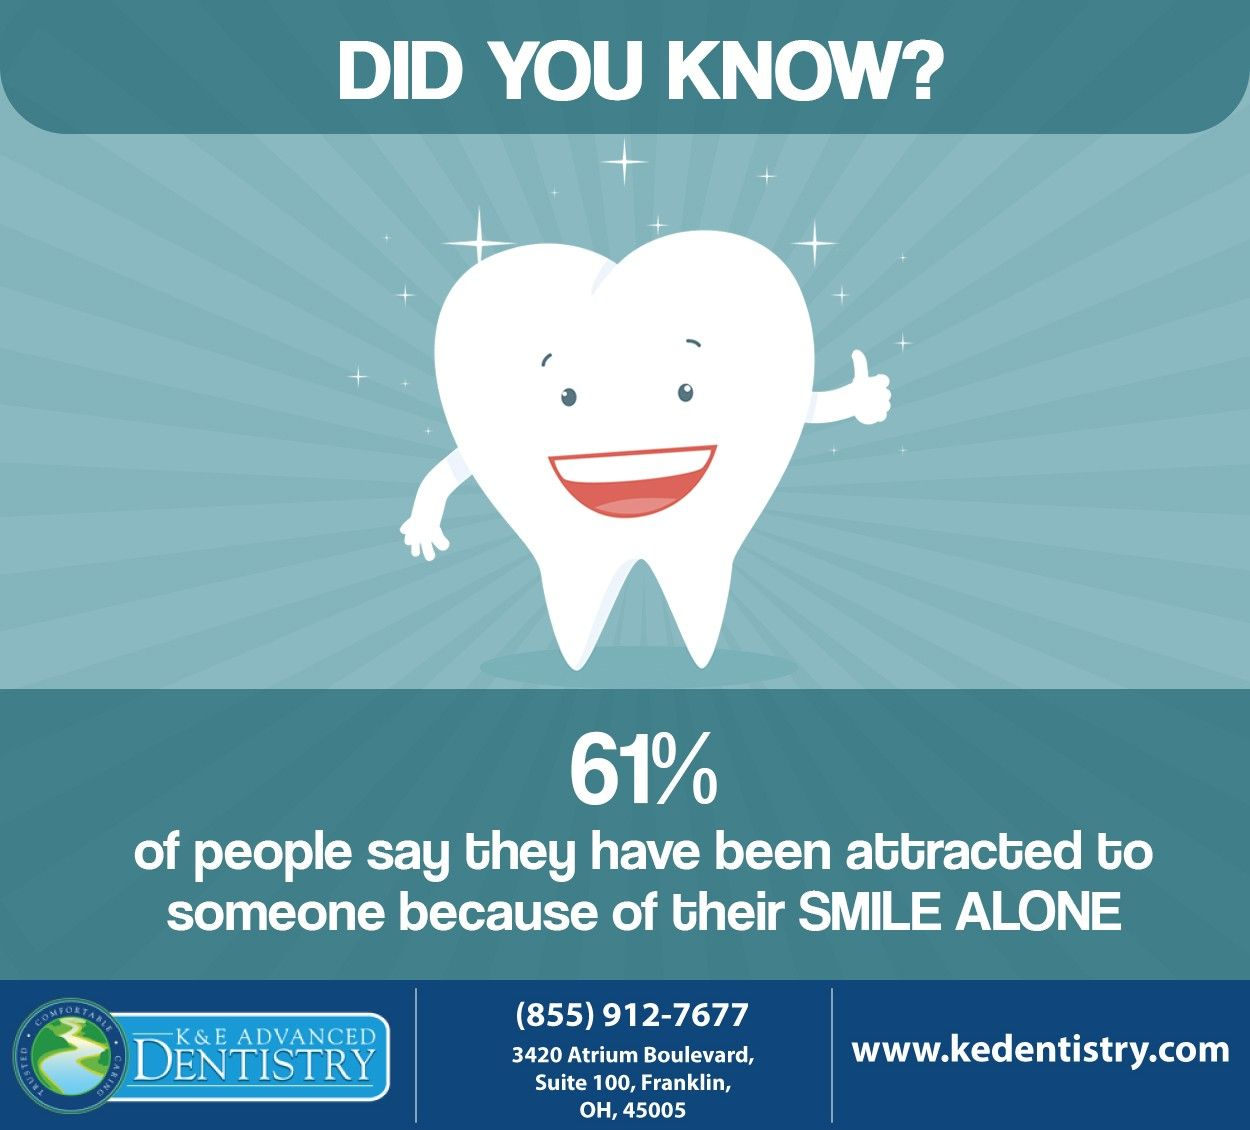 Is your smile that attractive? If not, give us a call at